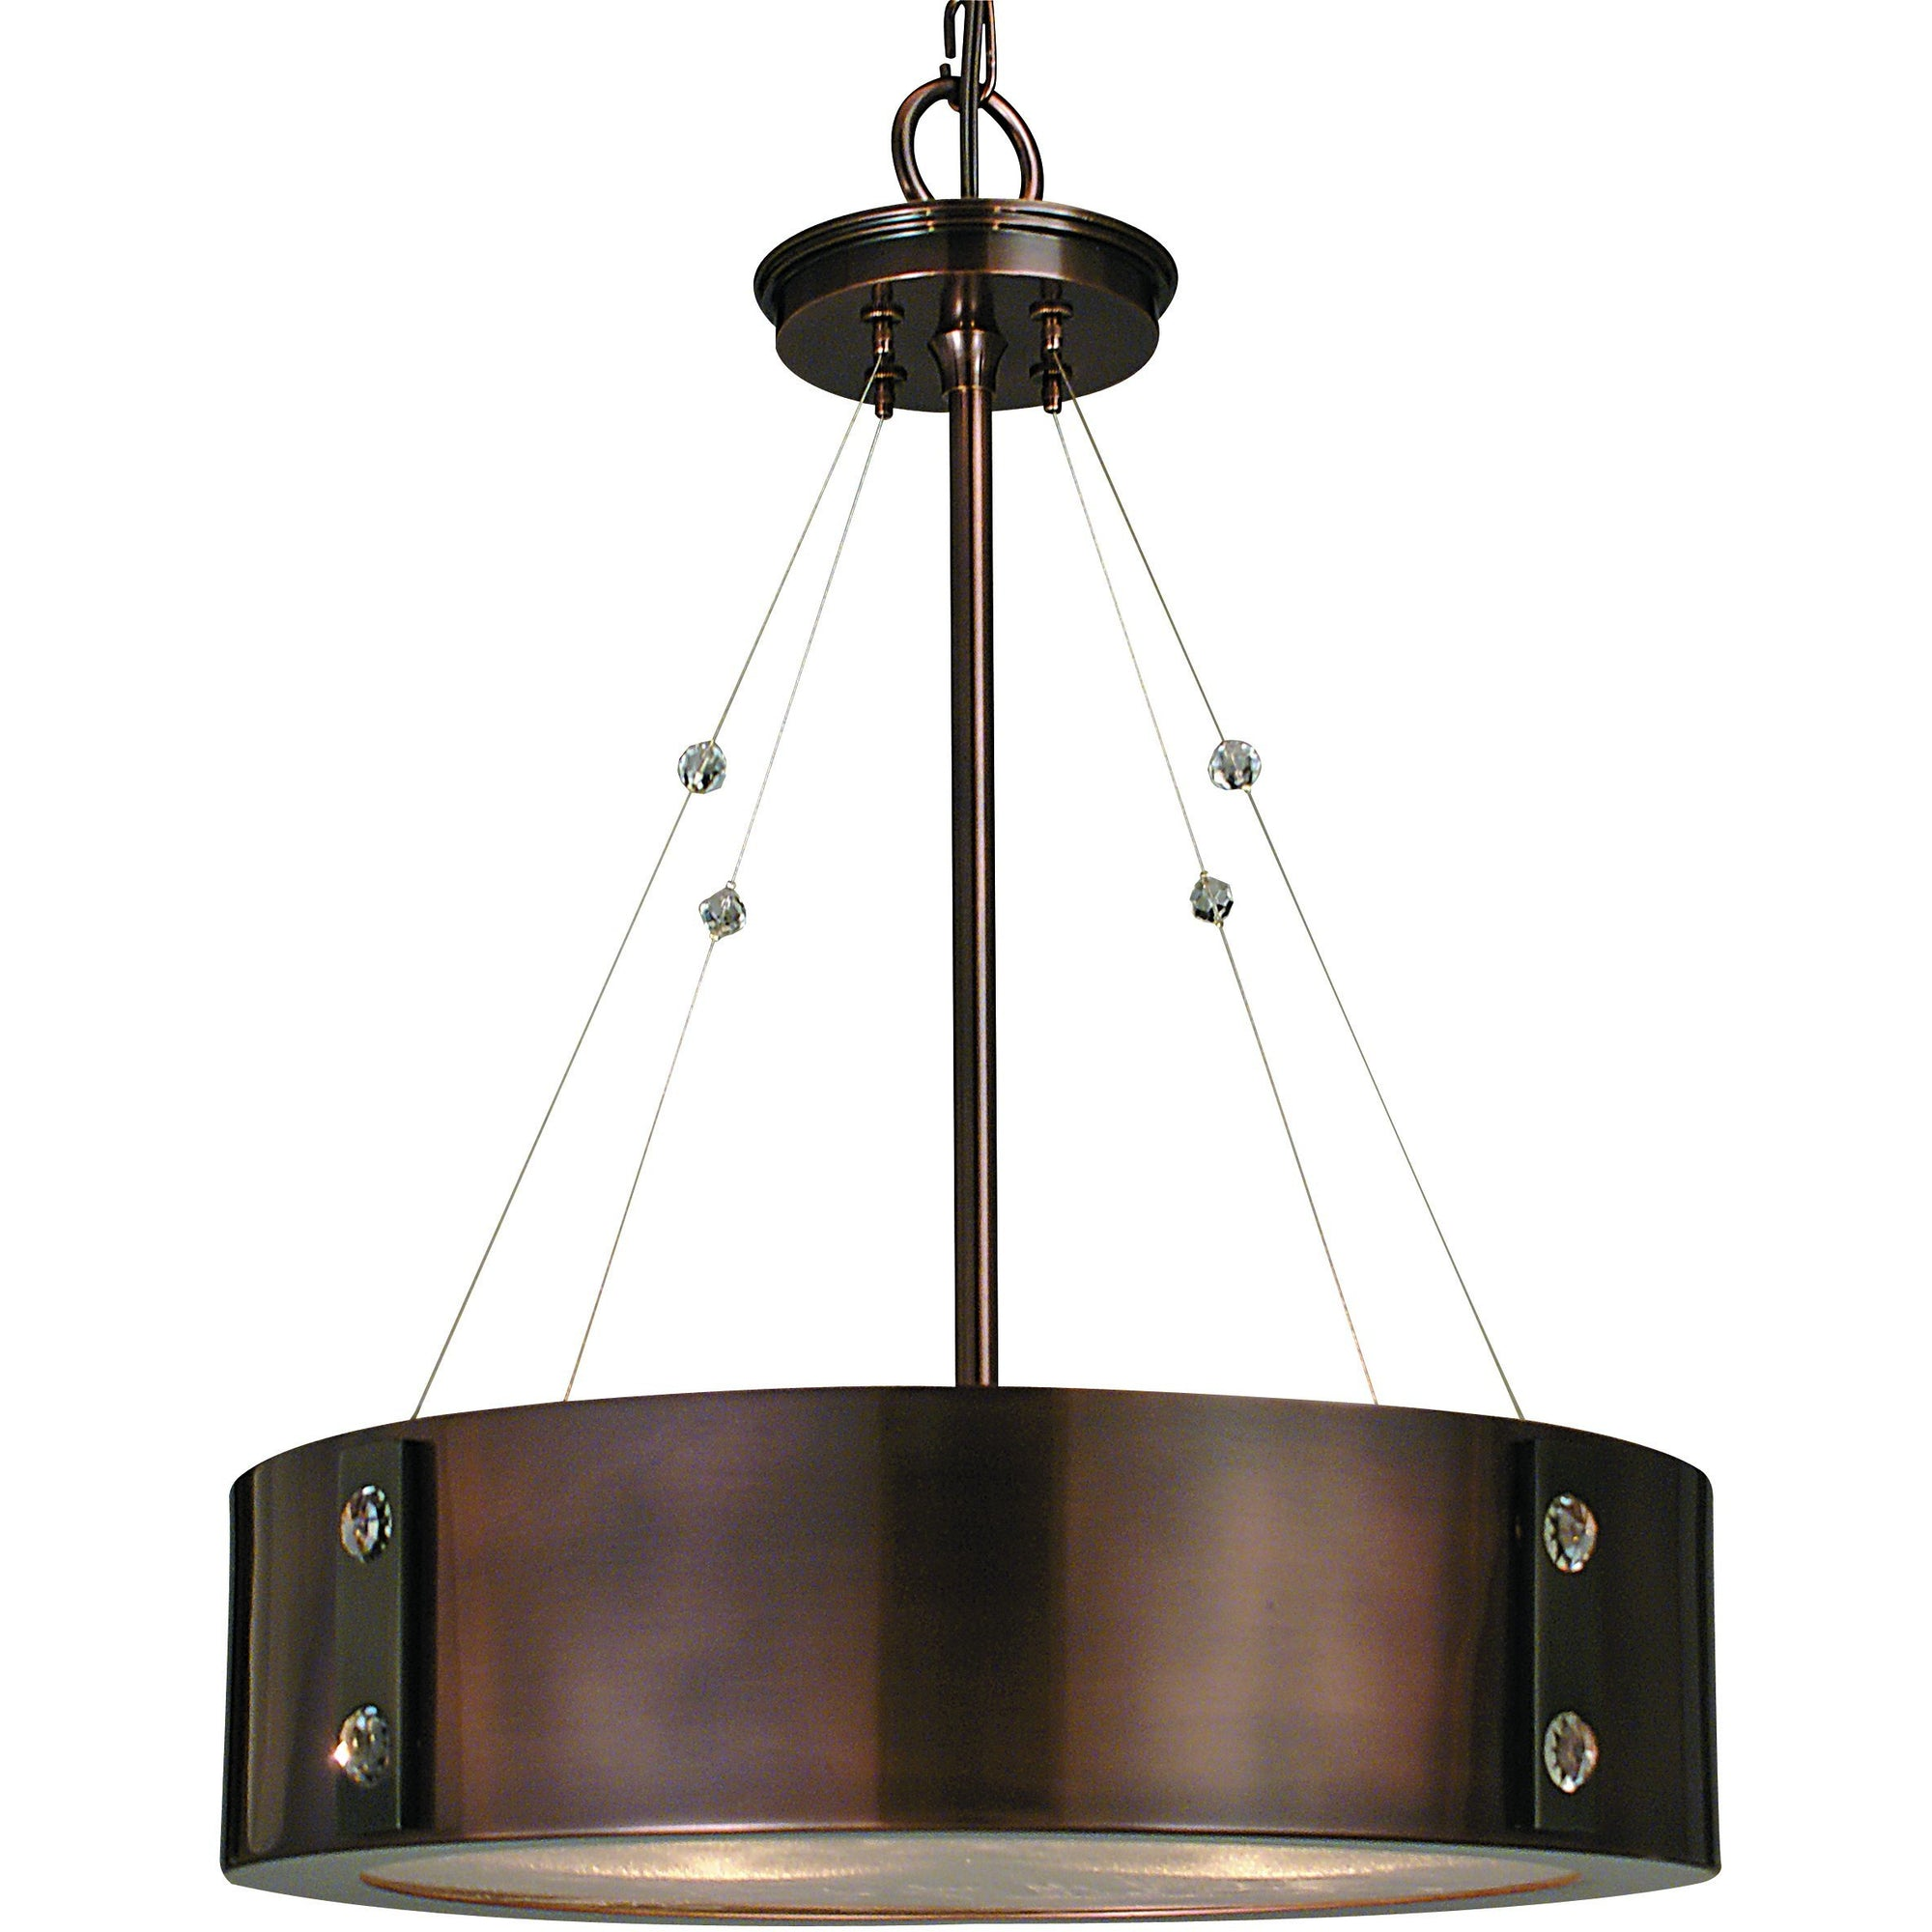 Framburg Chandeliers Roman Bronze with Ebony Accents 4-Light Roman Bronze/Ebony Oracle Dinette Chandelier by Framburg 5392